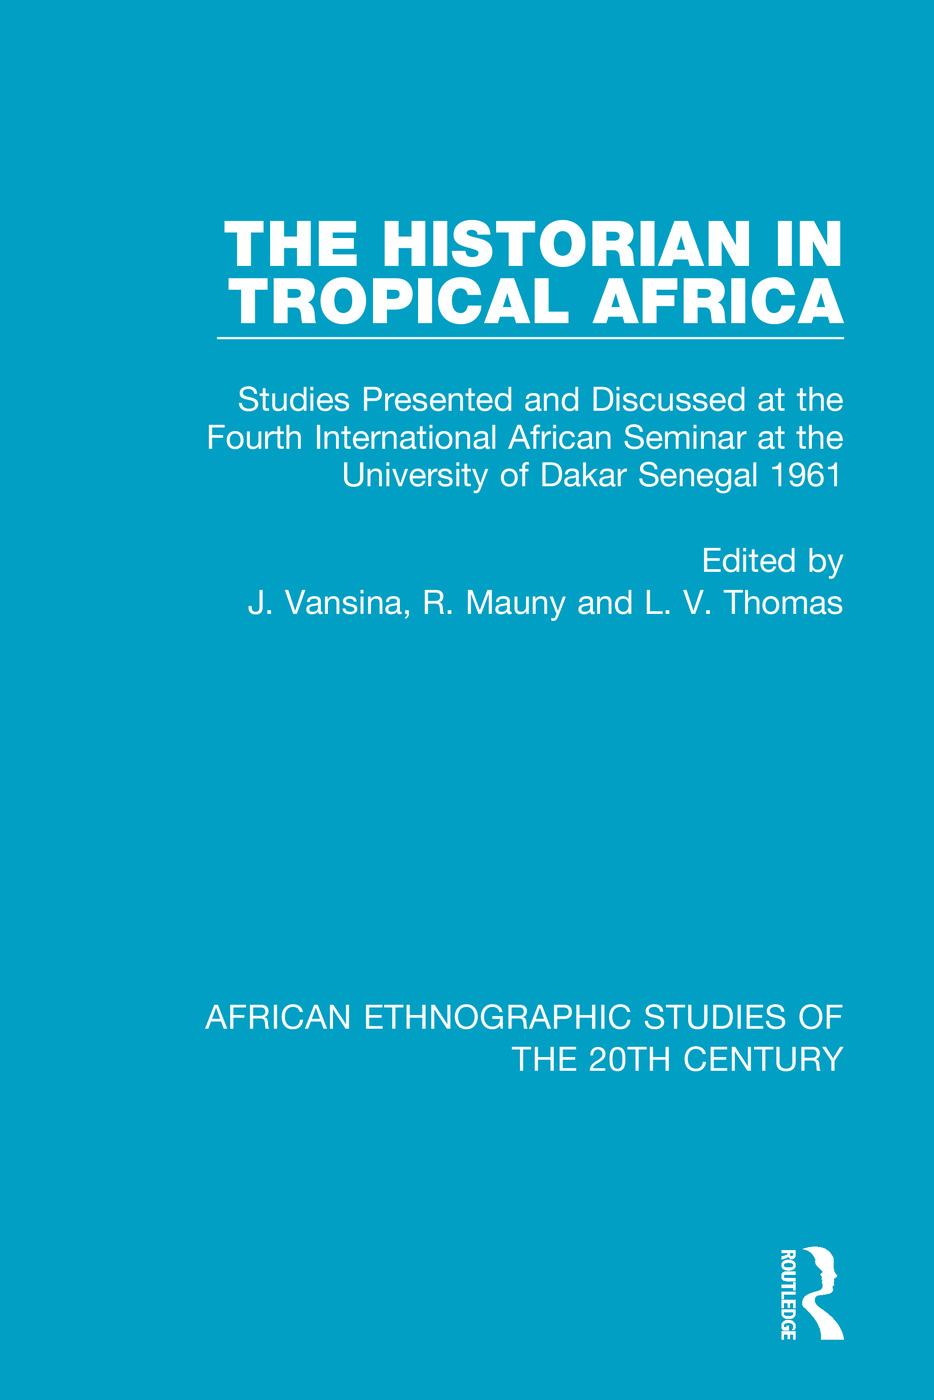 The Historian in Tropical Africa: Studies Presented and Discussed at the Fourth International African Seminar at the University of Dakar, Senegal 1961 book cover